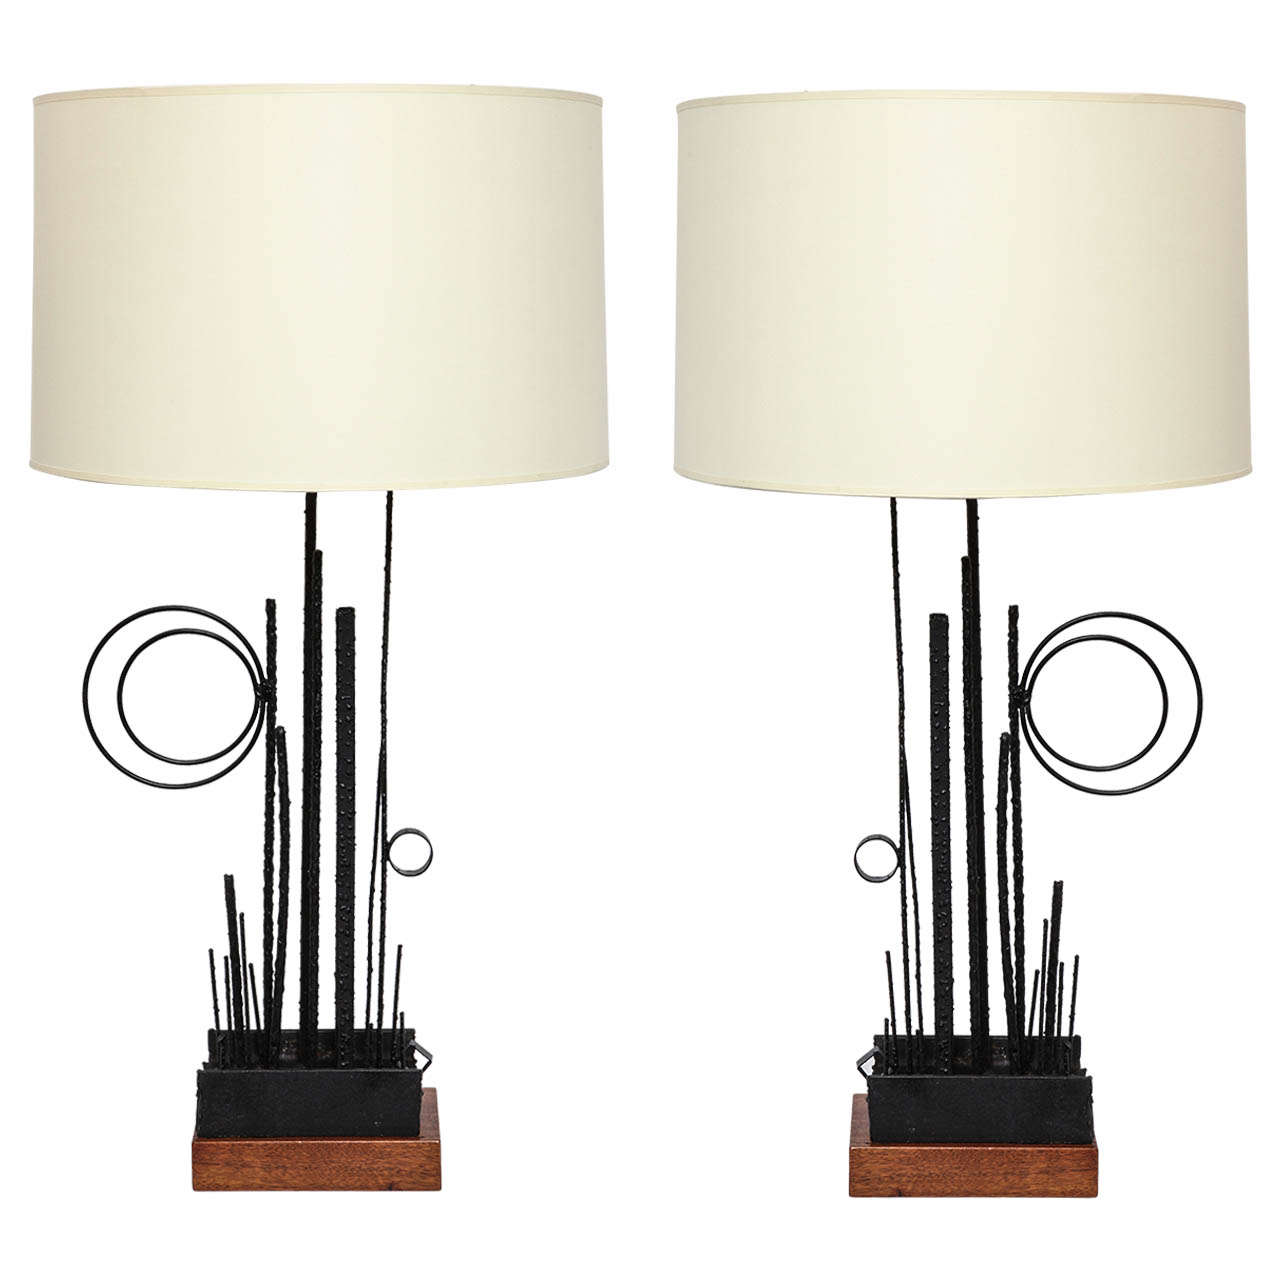 Pair of Italian 1950s Abstract Expressionist Hand-Wrought Iron Table Lamps